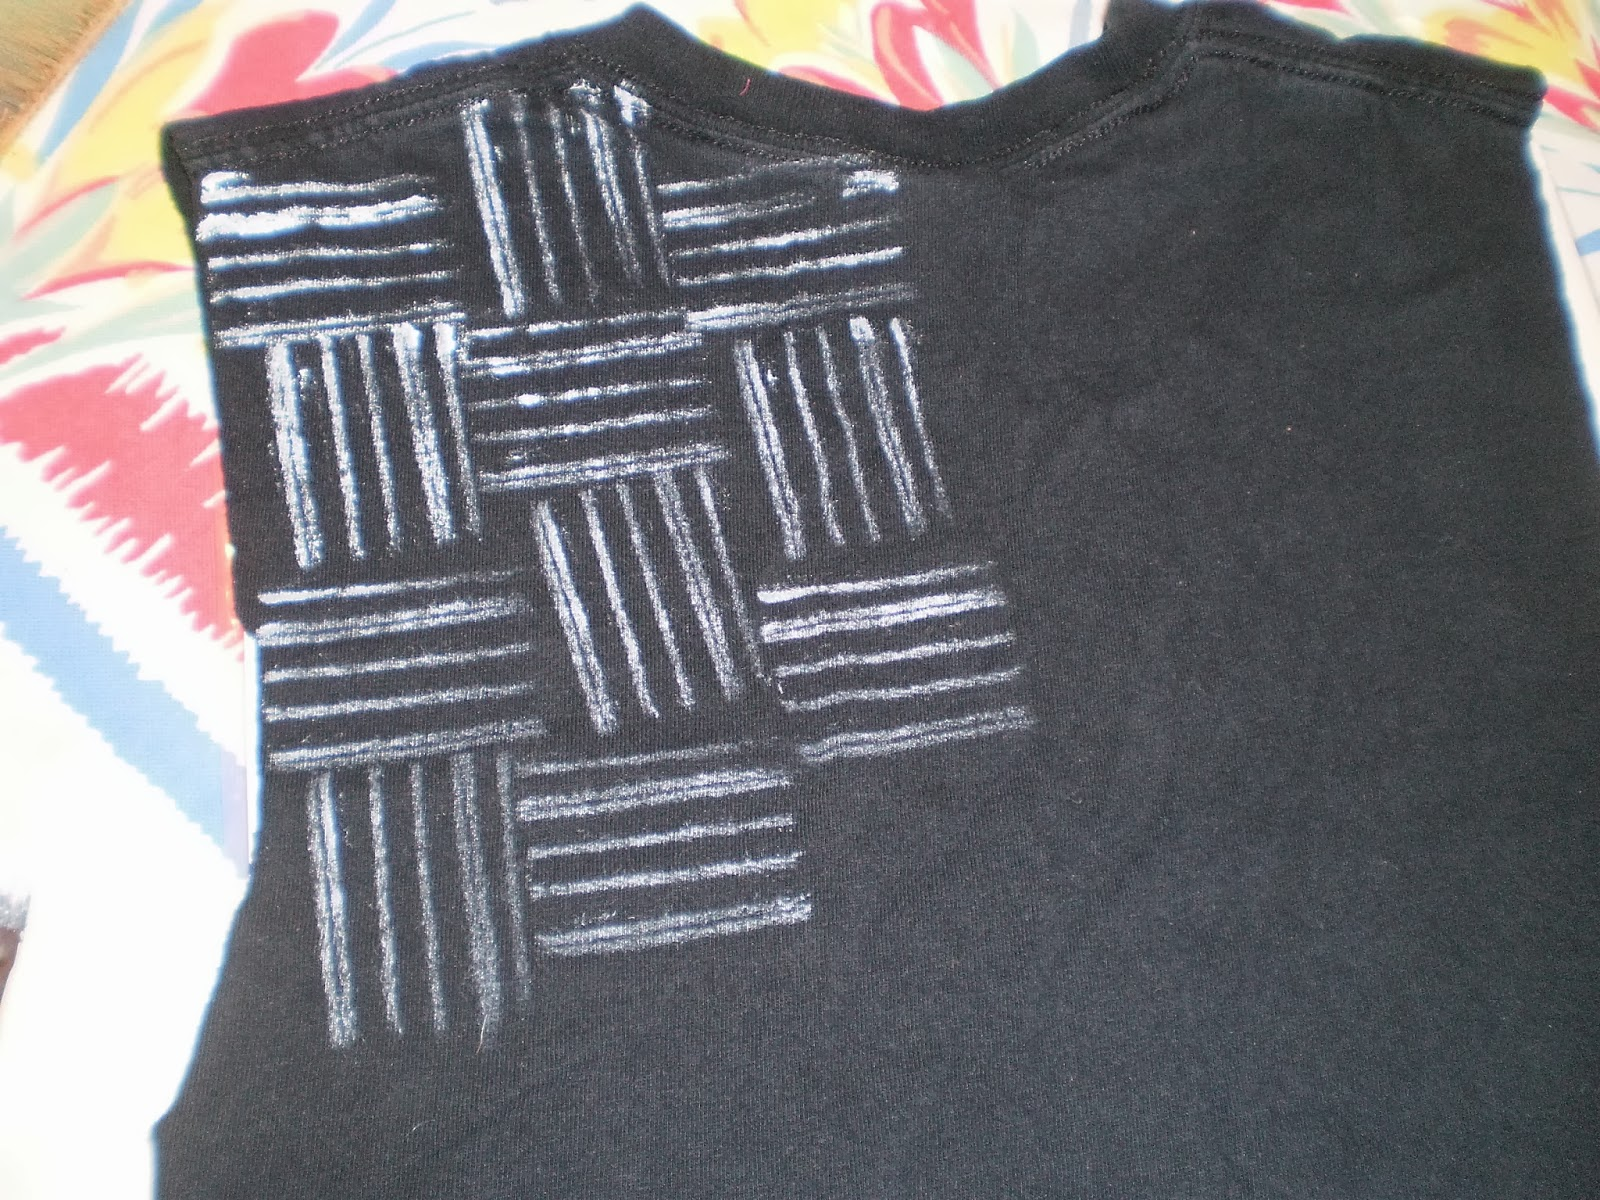 Shirt design with fabric paint - I Got The Idea To Make This Stamp On Pinterest I Just Wrapped Yarn Around A Wooden Block To Achieve My Desired Design Then I Used Fabric Paint To Make The